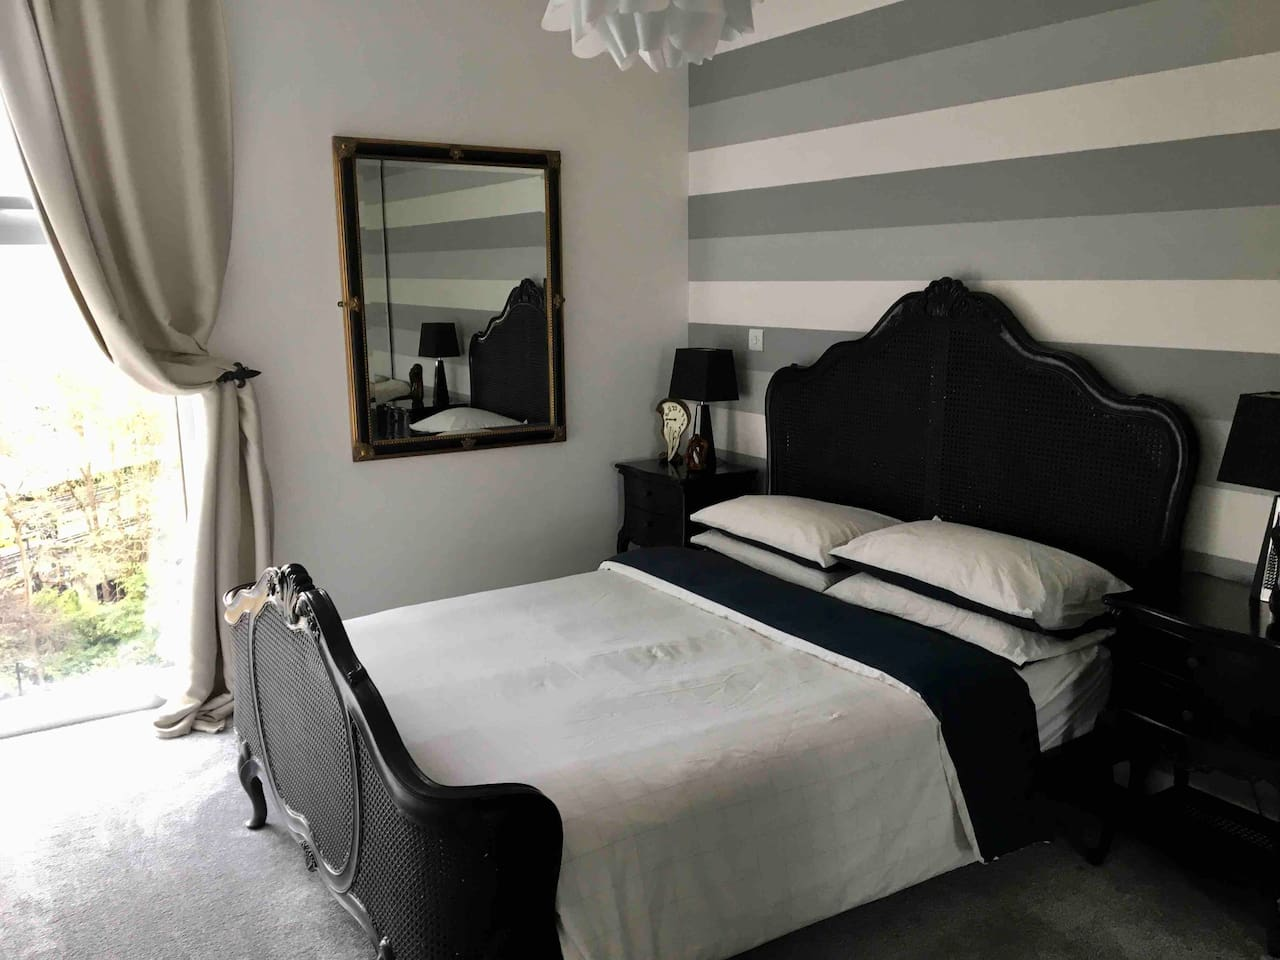 Spacious bedroom with views to the city. King size bed (quality mattress) and wardrobe.